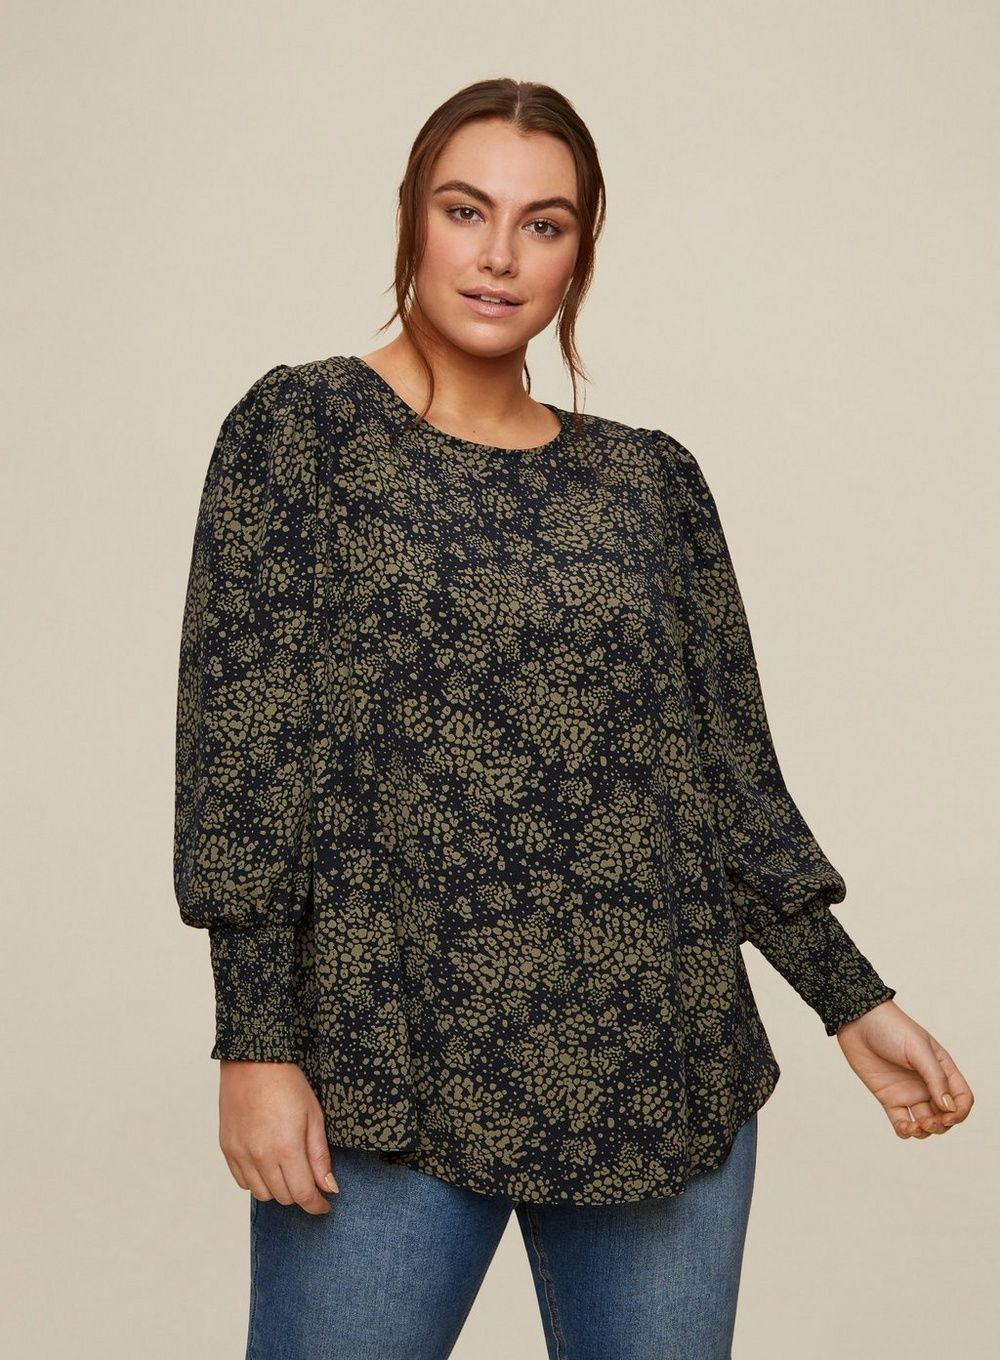 Dorothy Perkins Womens Curve Black Long Sleeve Top Round Neck Blouse Shirt